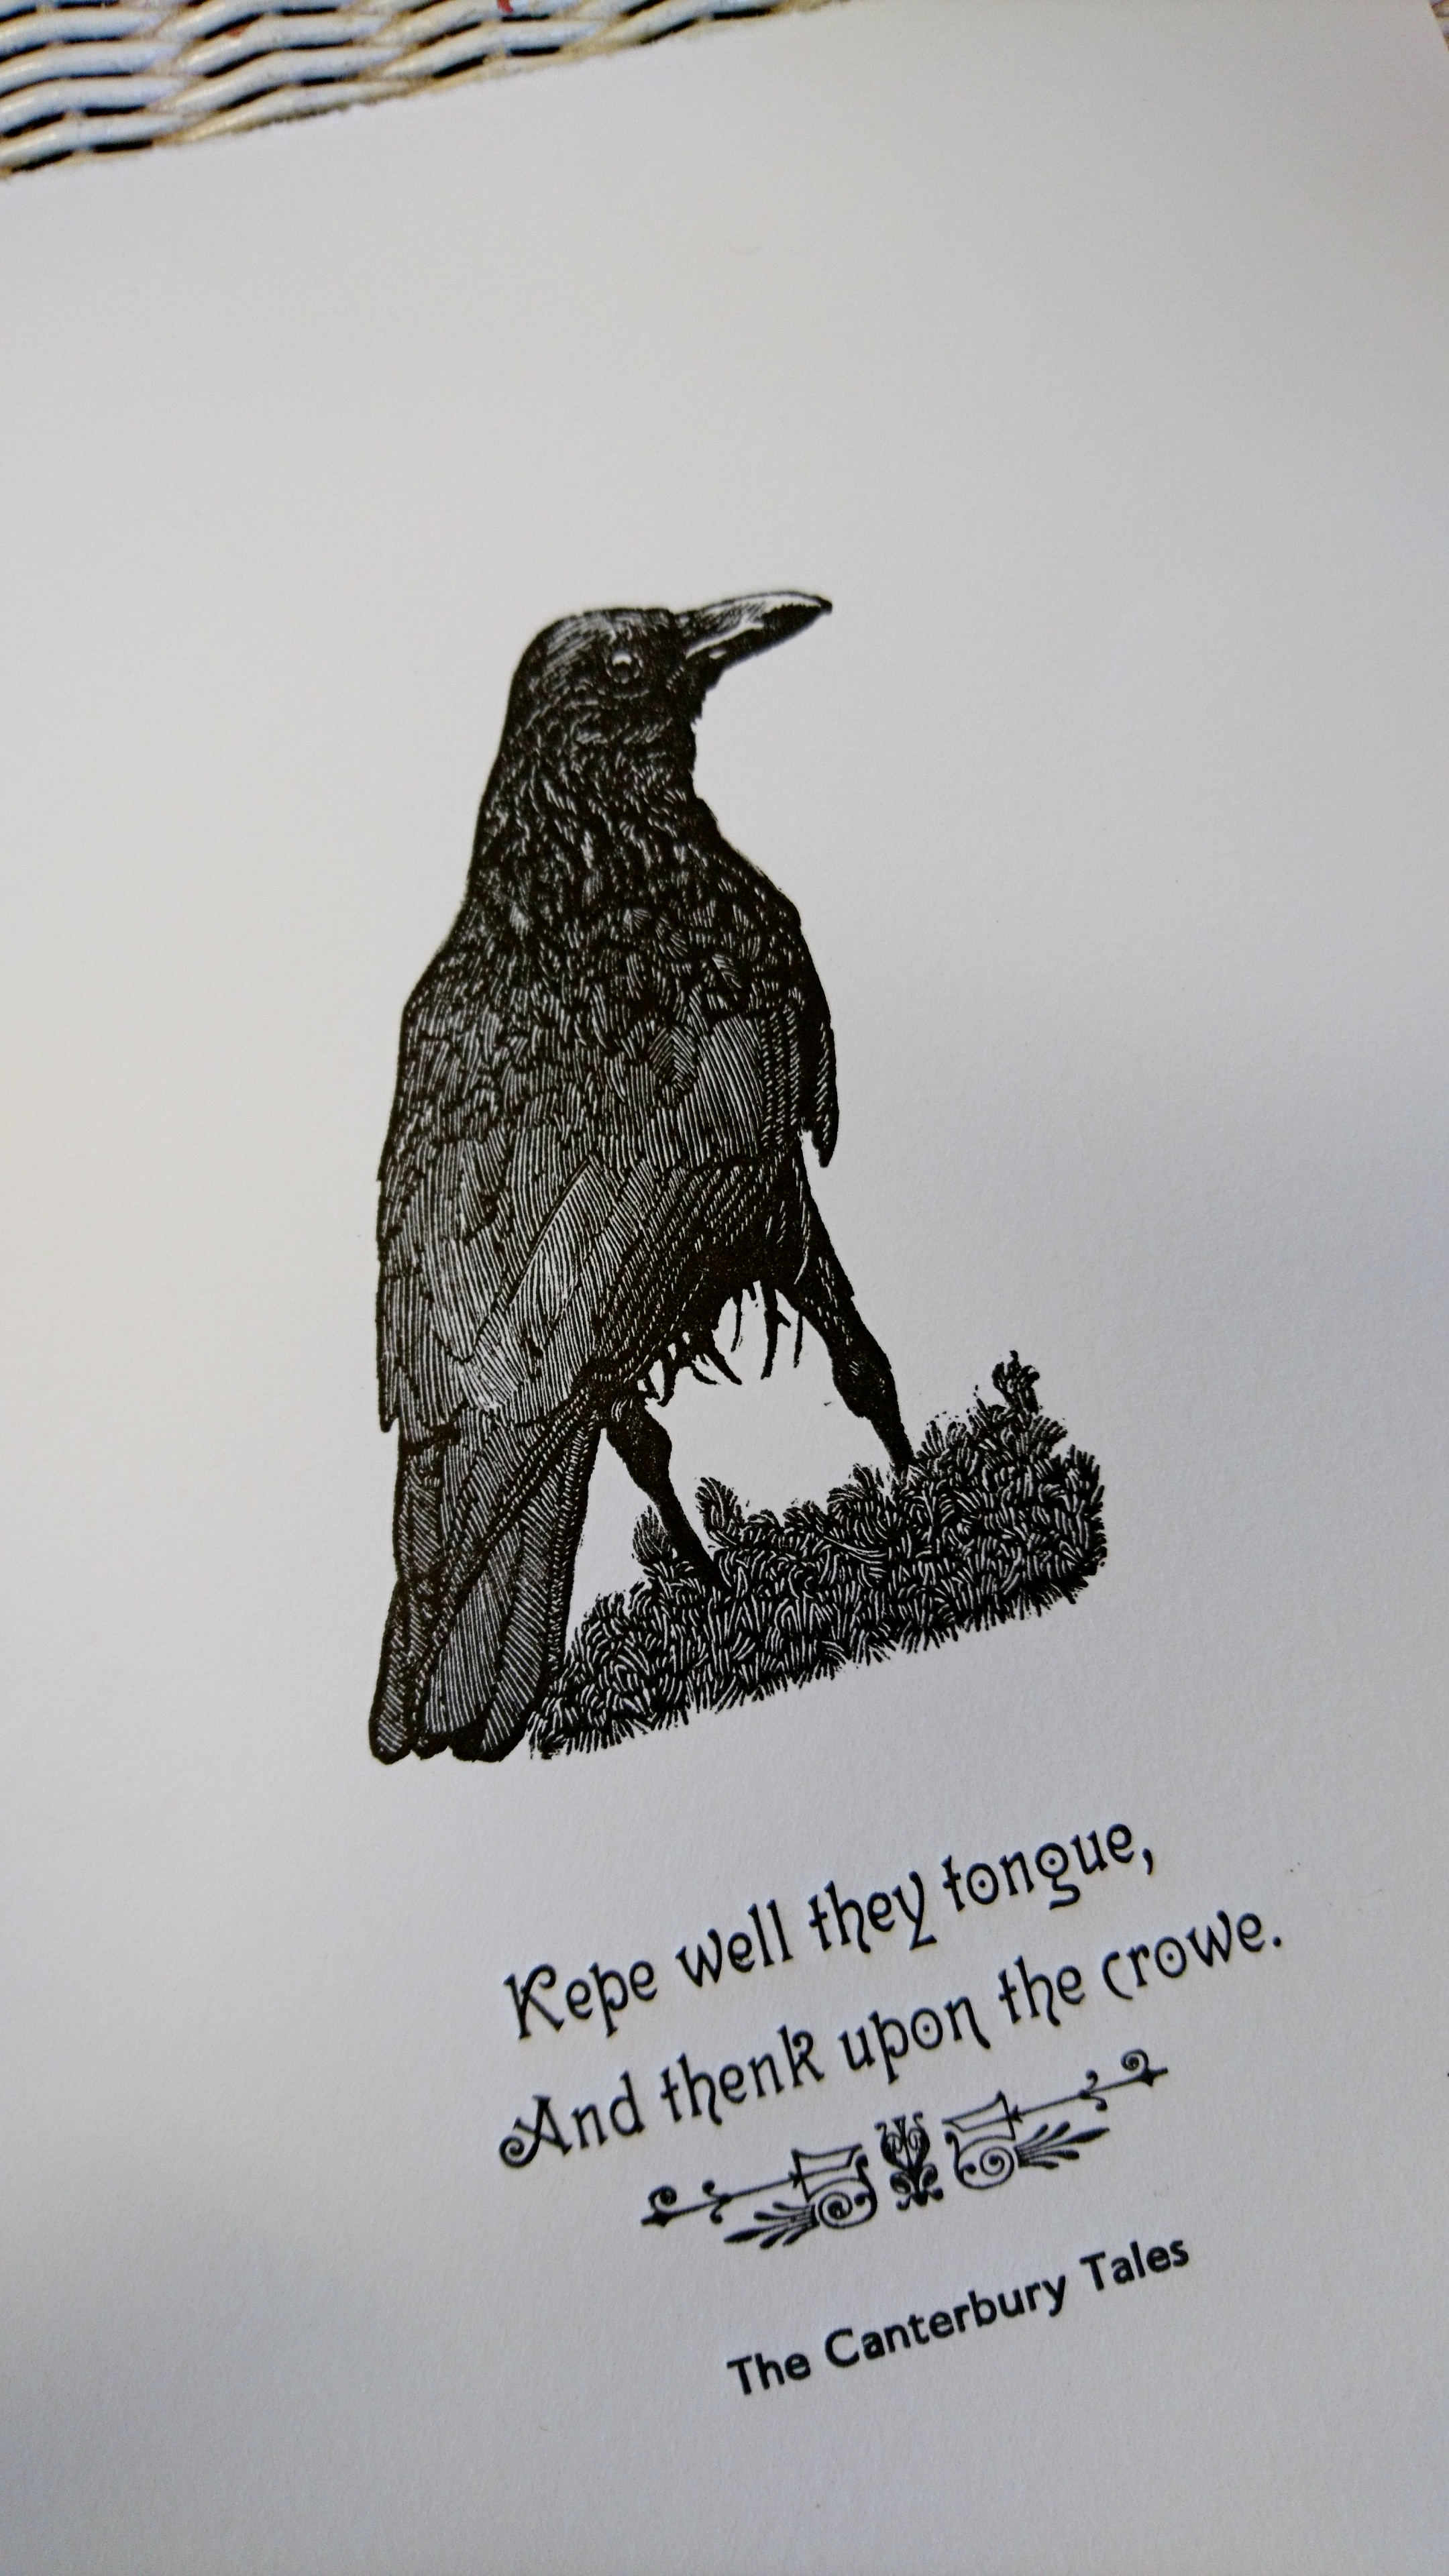 Chaucer's Crow: Detail